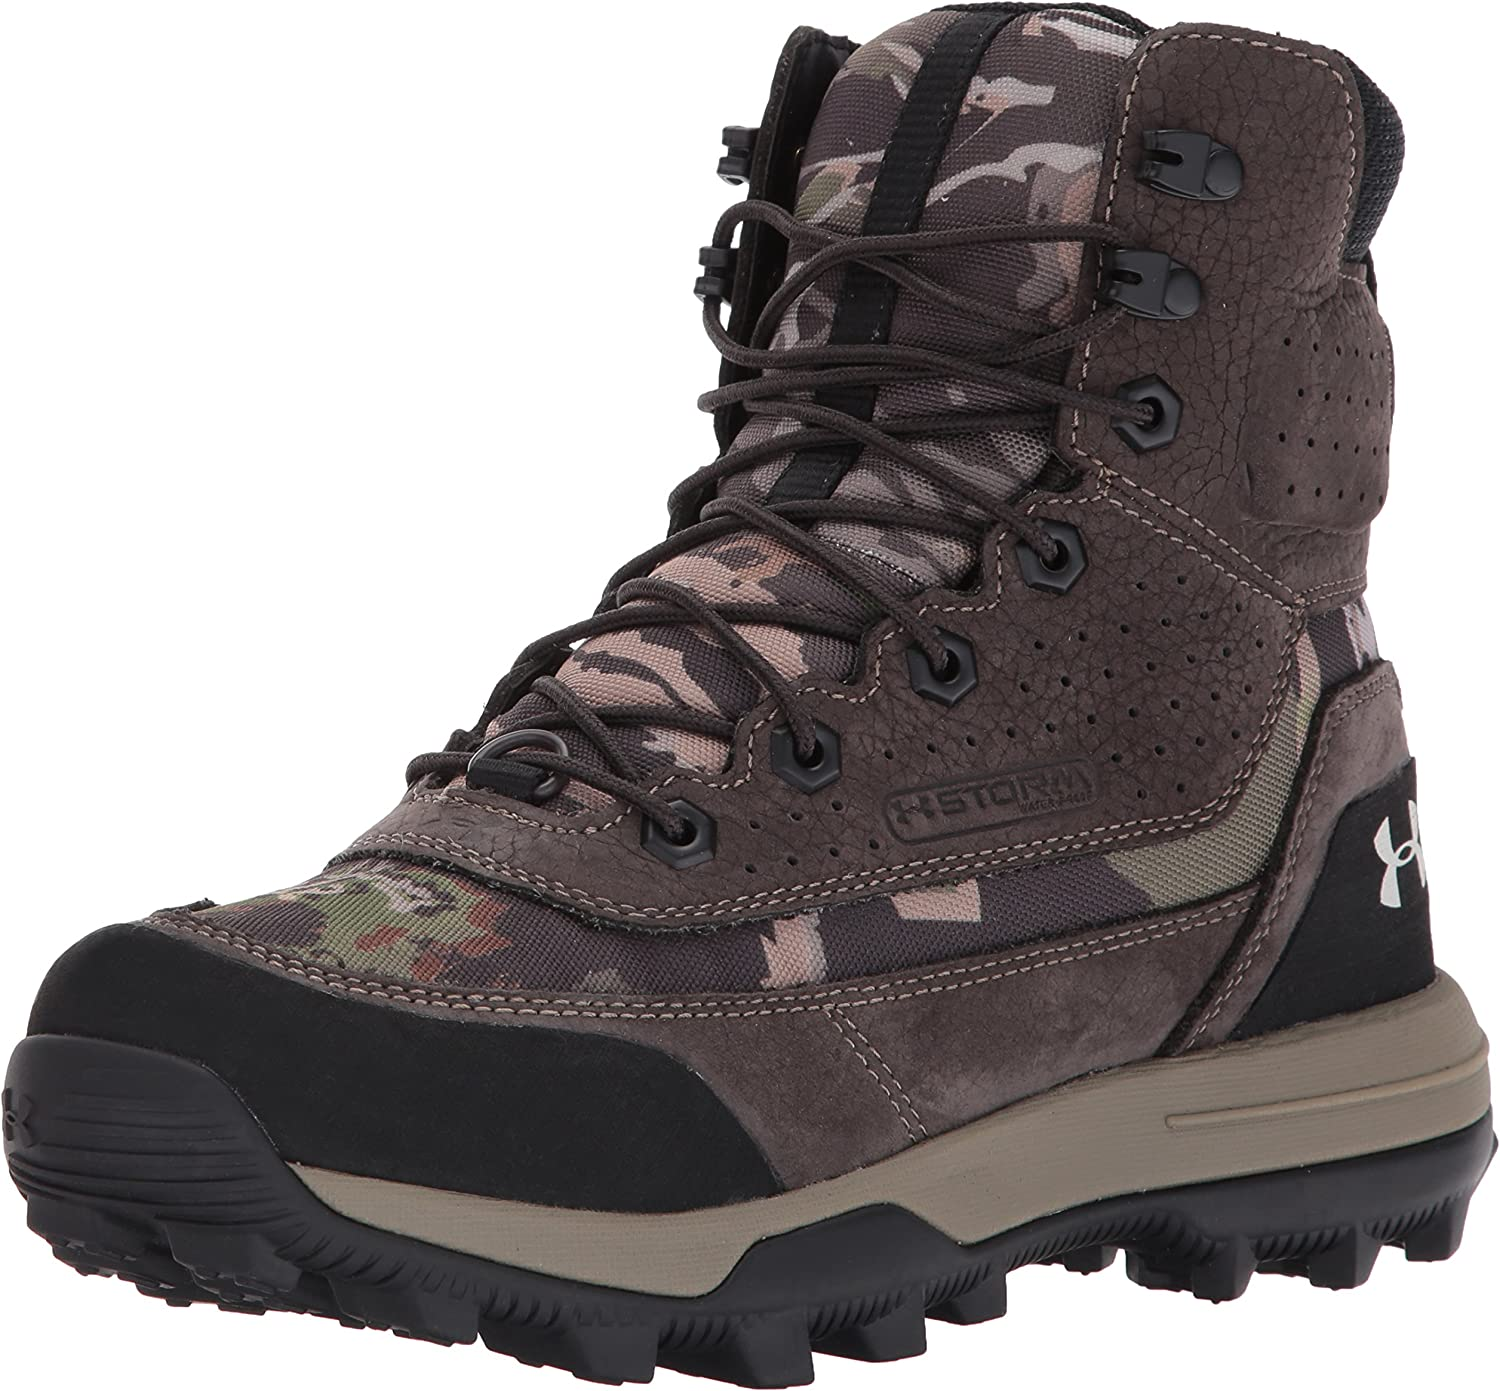 Under Armour Women's Speed Freek Bozeman 2.0 Ankle Boot, Ridge Reaper Camo Fo (943)/Cannon, 11